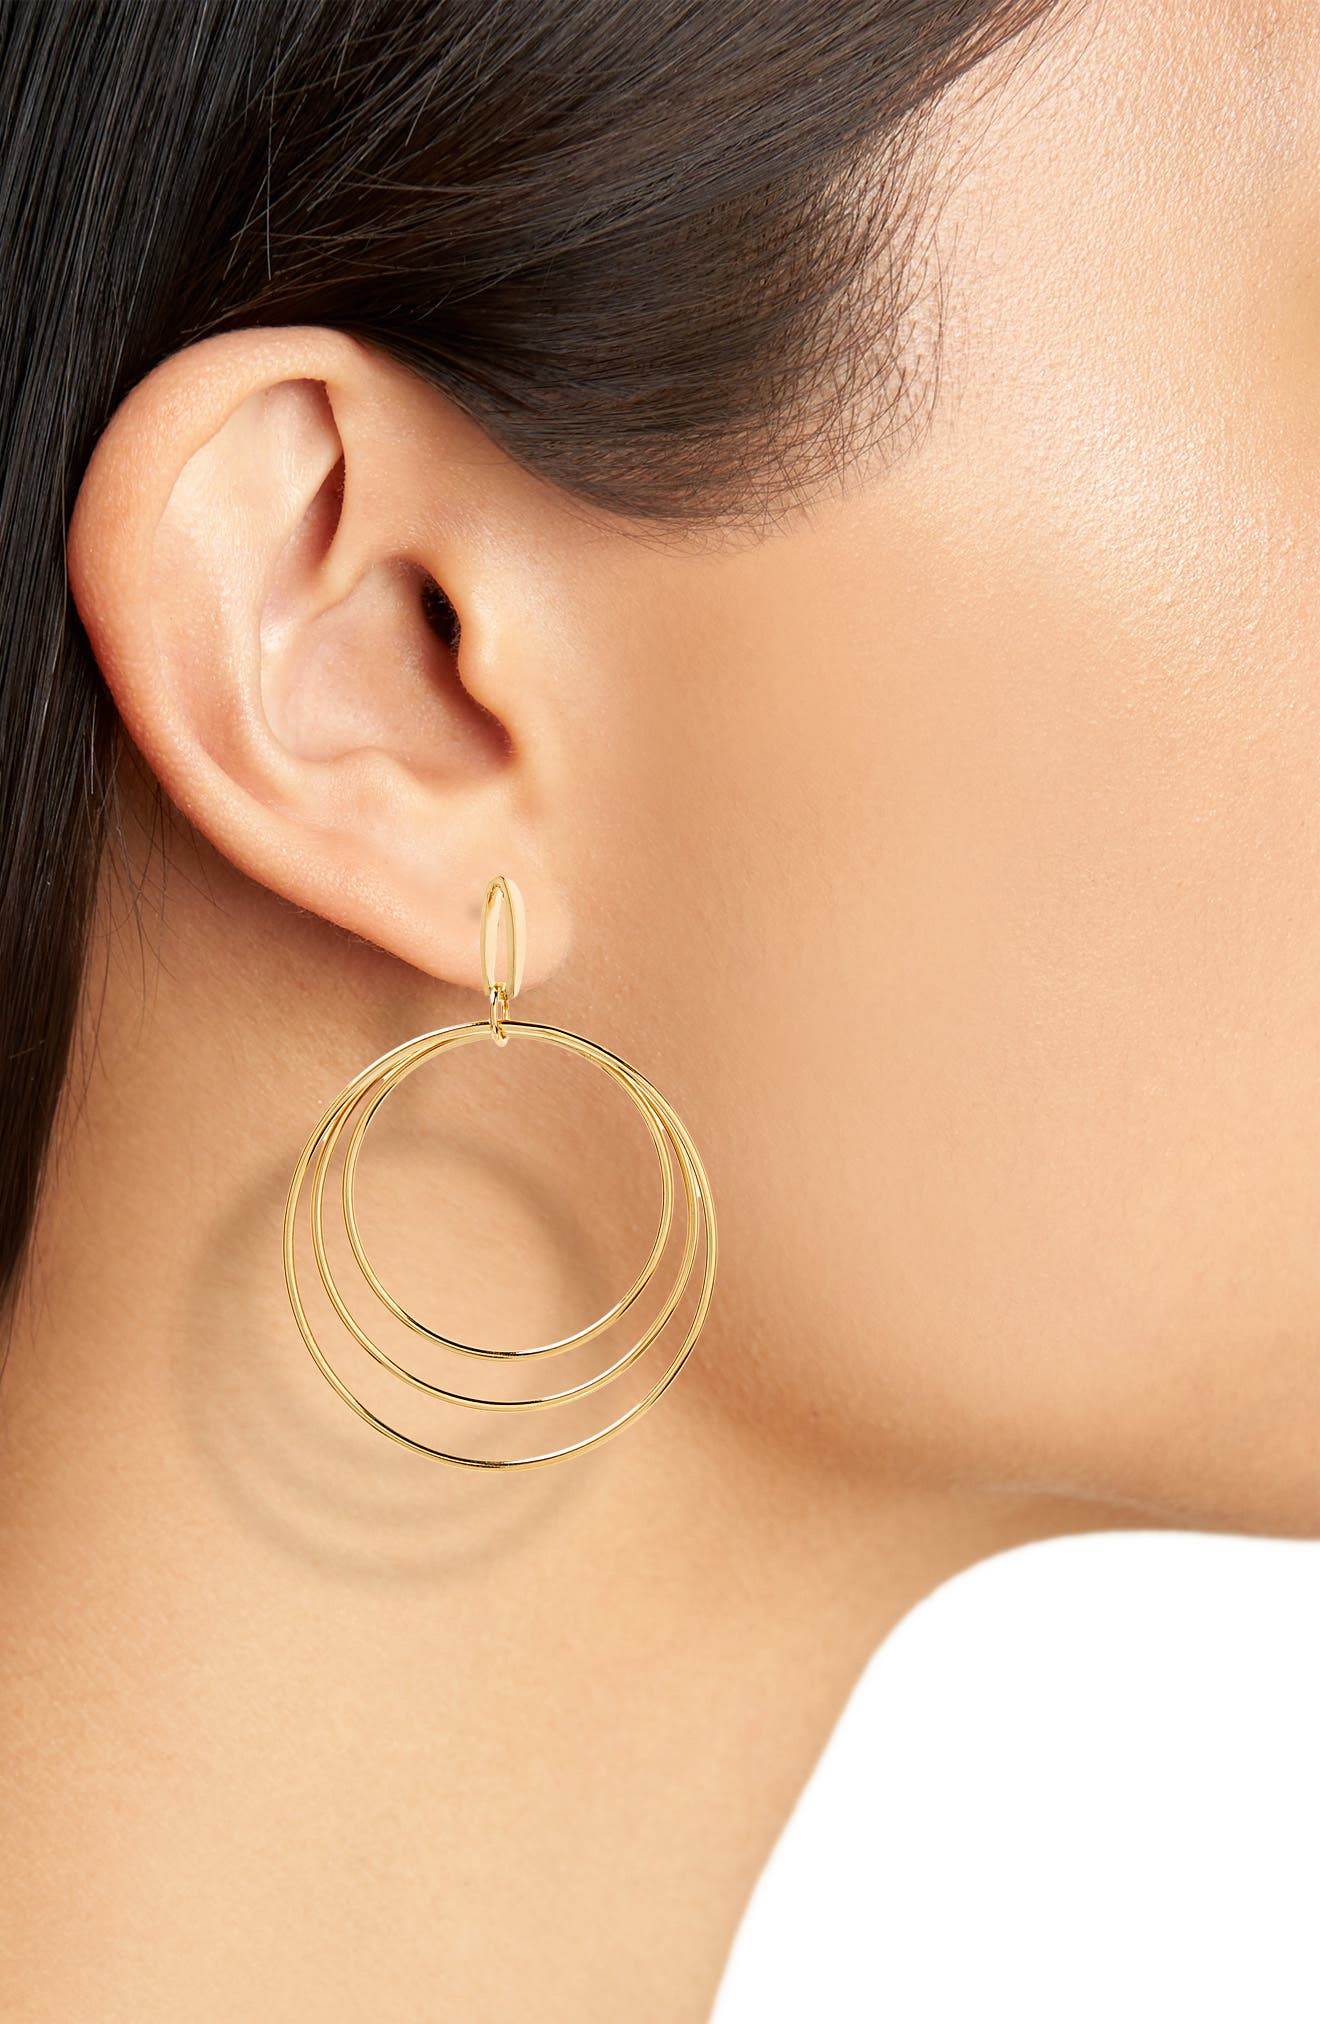 Mini Christy Vermeil Hoop Earrings,                             Alternate thumbnail 2, color,                             GOLD PLATED STERLING SILVER